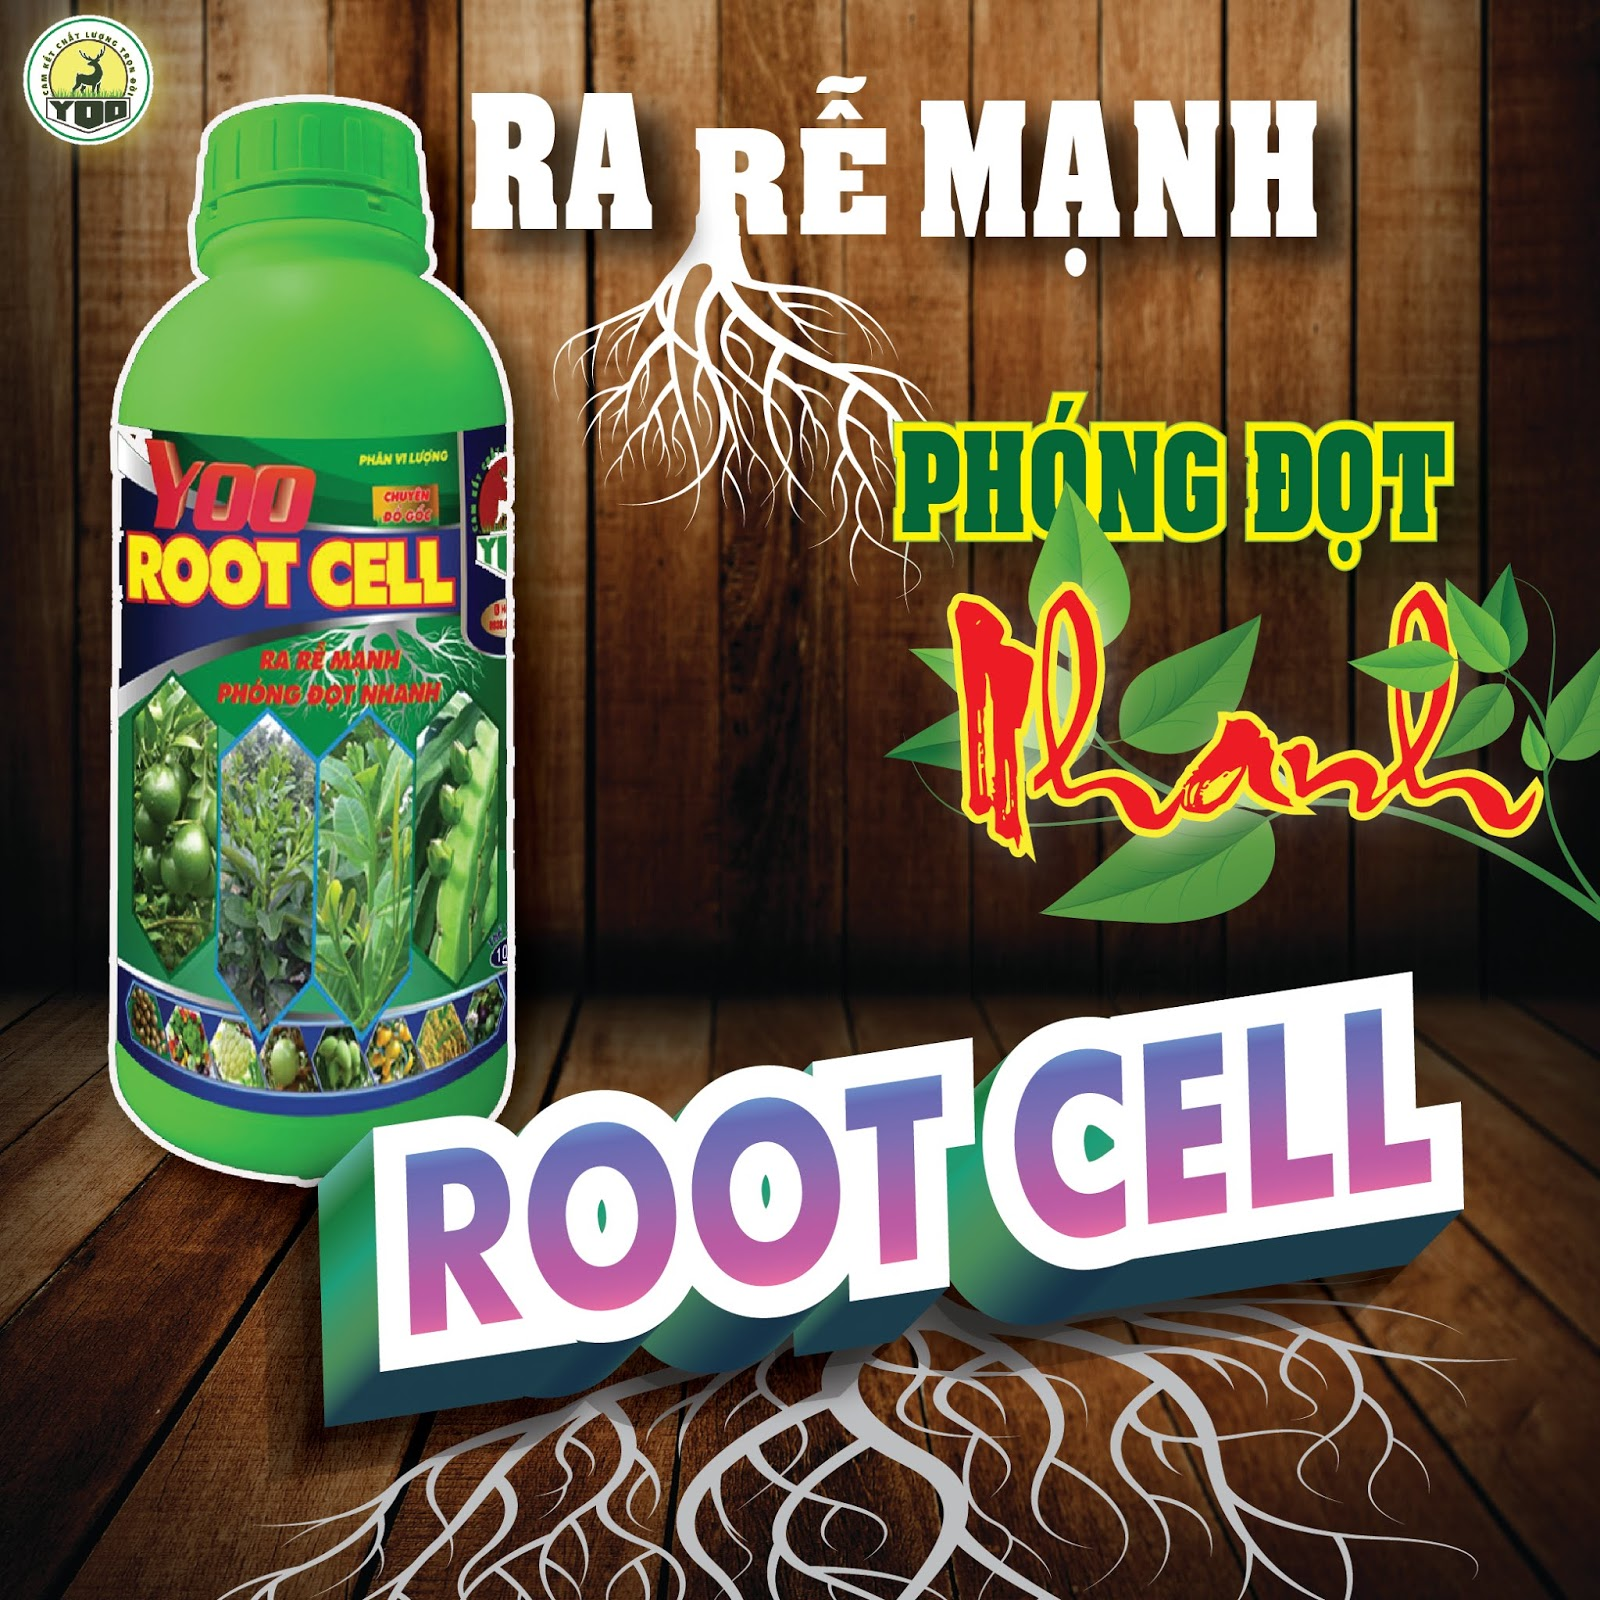 YOO ROOT CELL